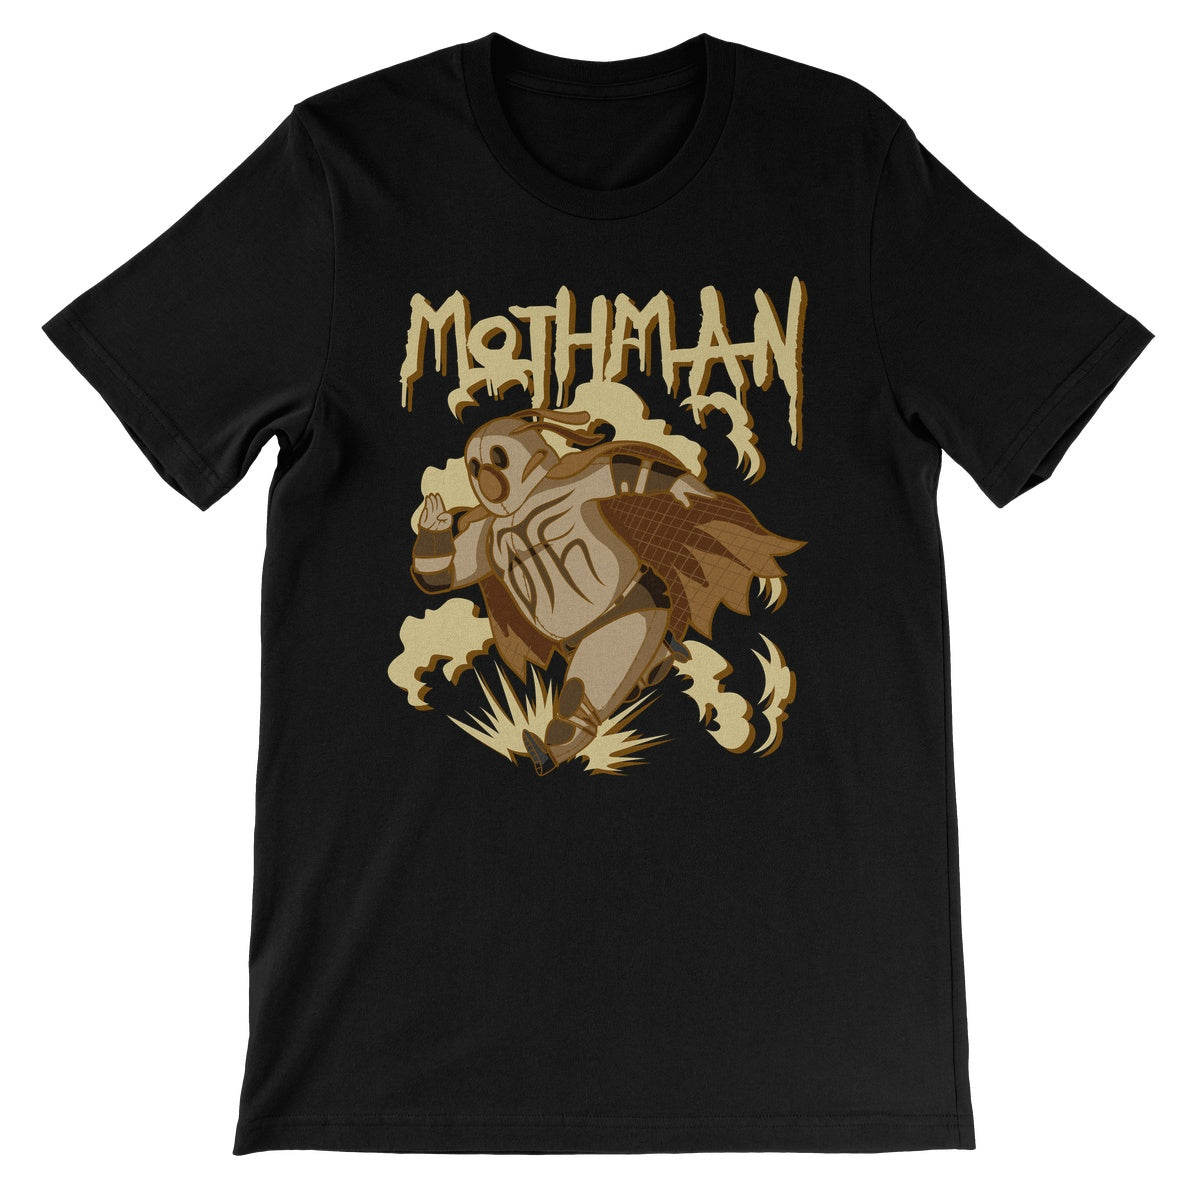 TNT Extreme Wrestling Mothman Unisex Short Sleeve T-Shirt